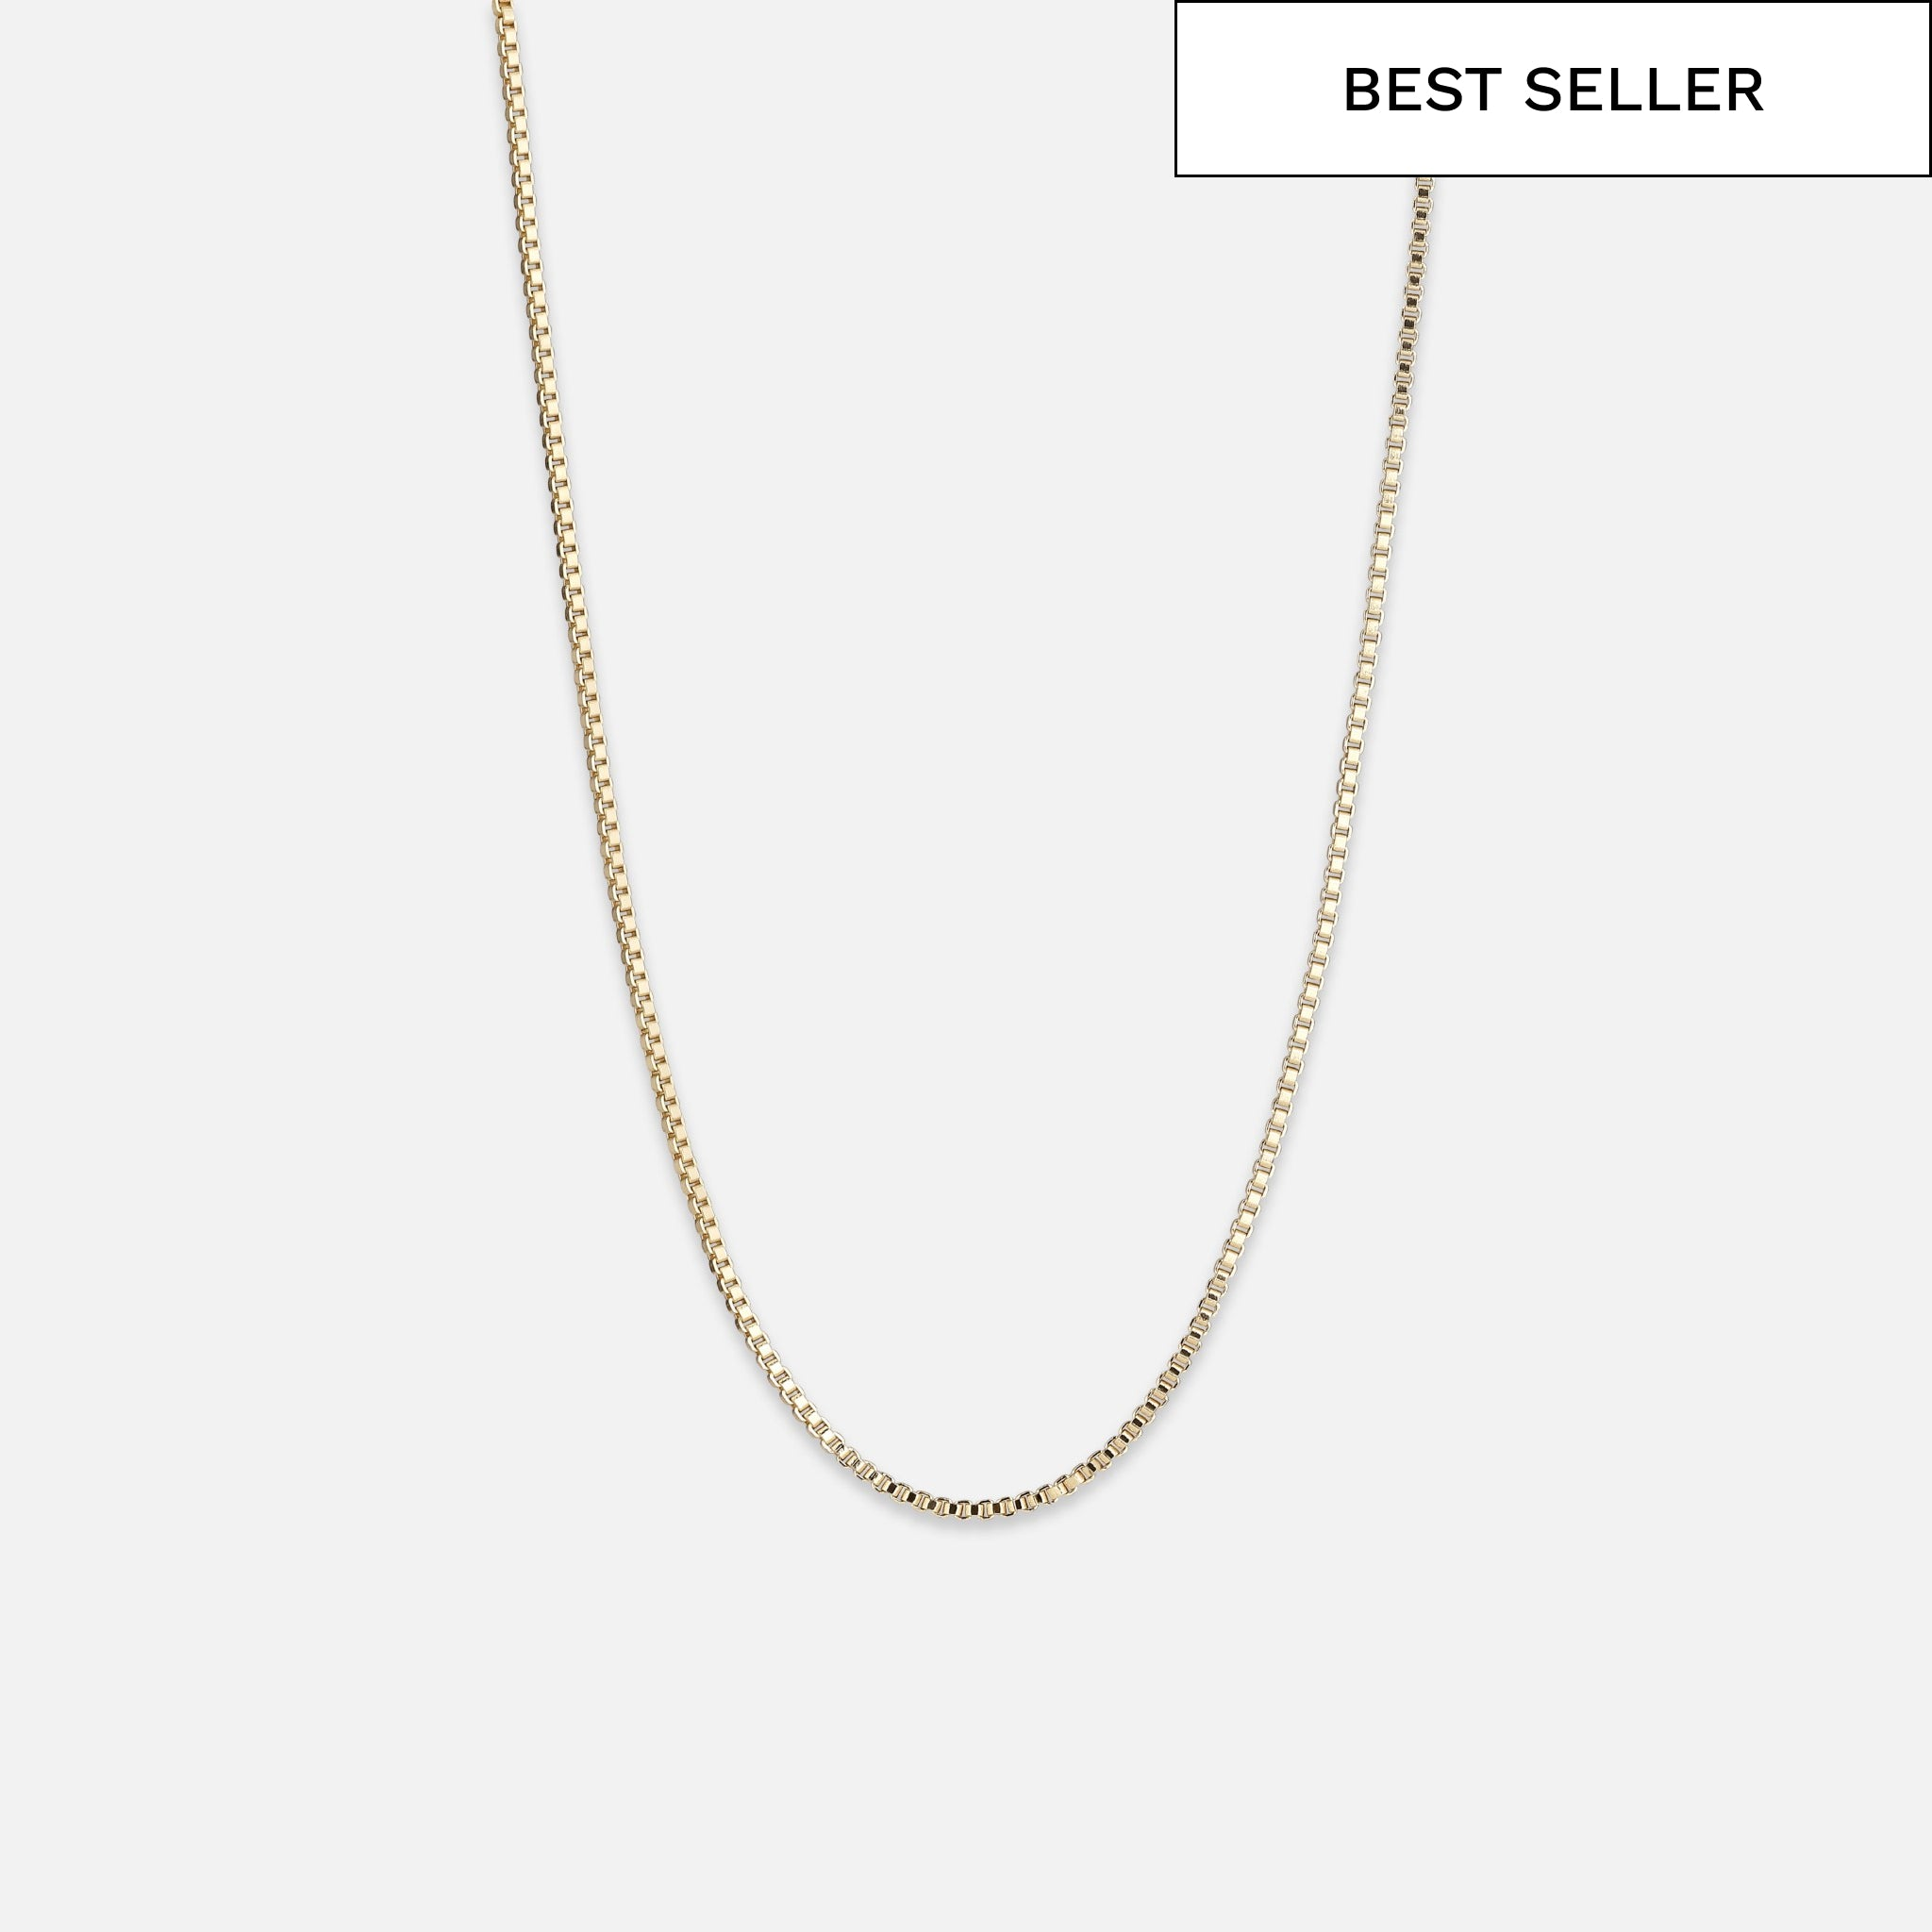 North North North Gold Necklace | Terkel | Box Chain Necklace Gold